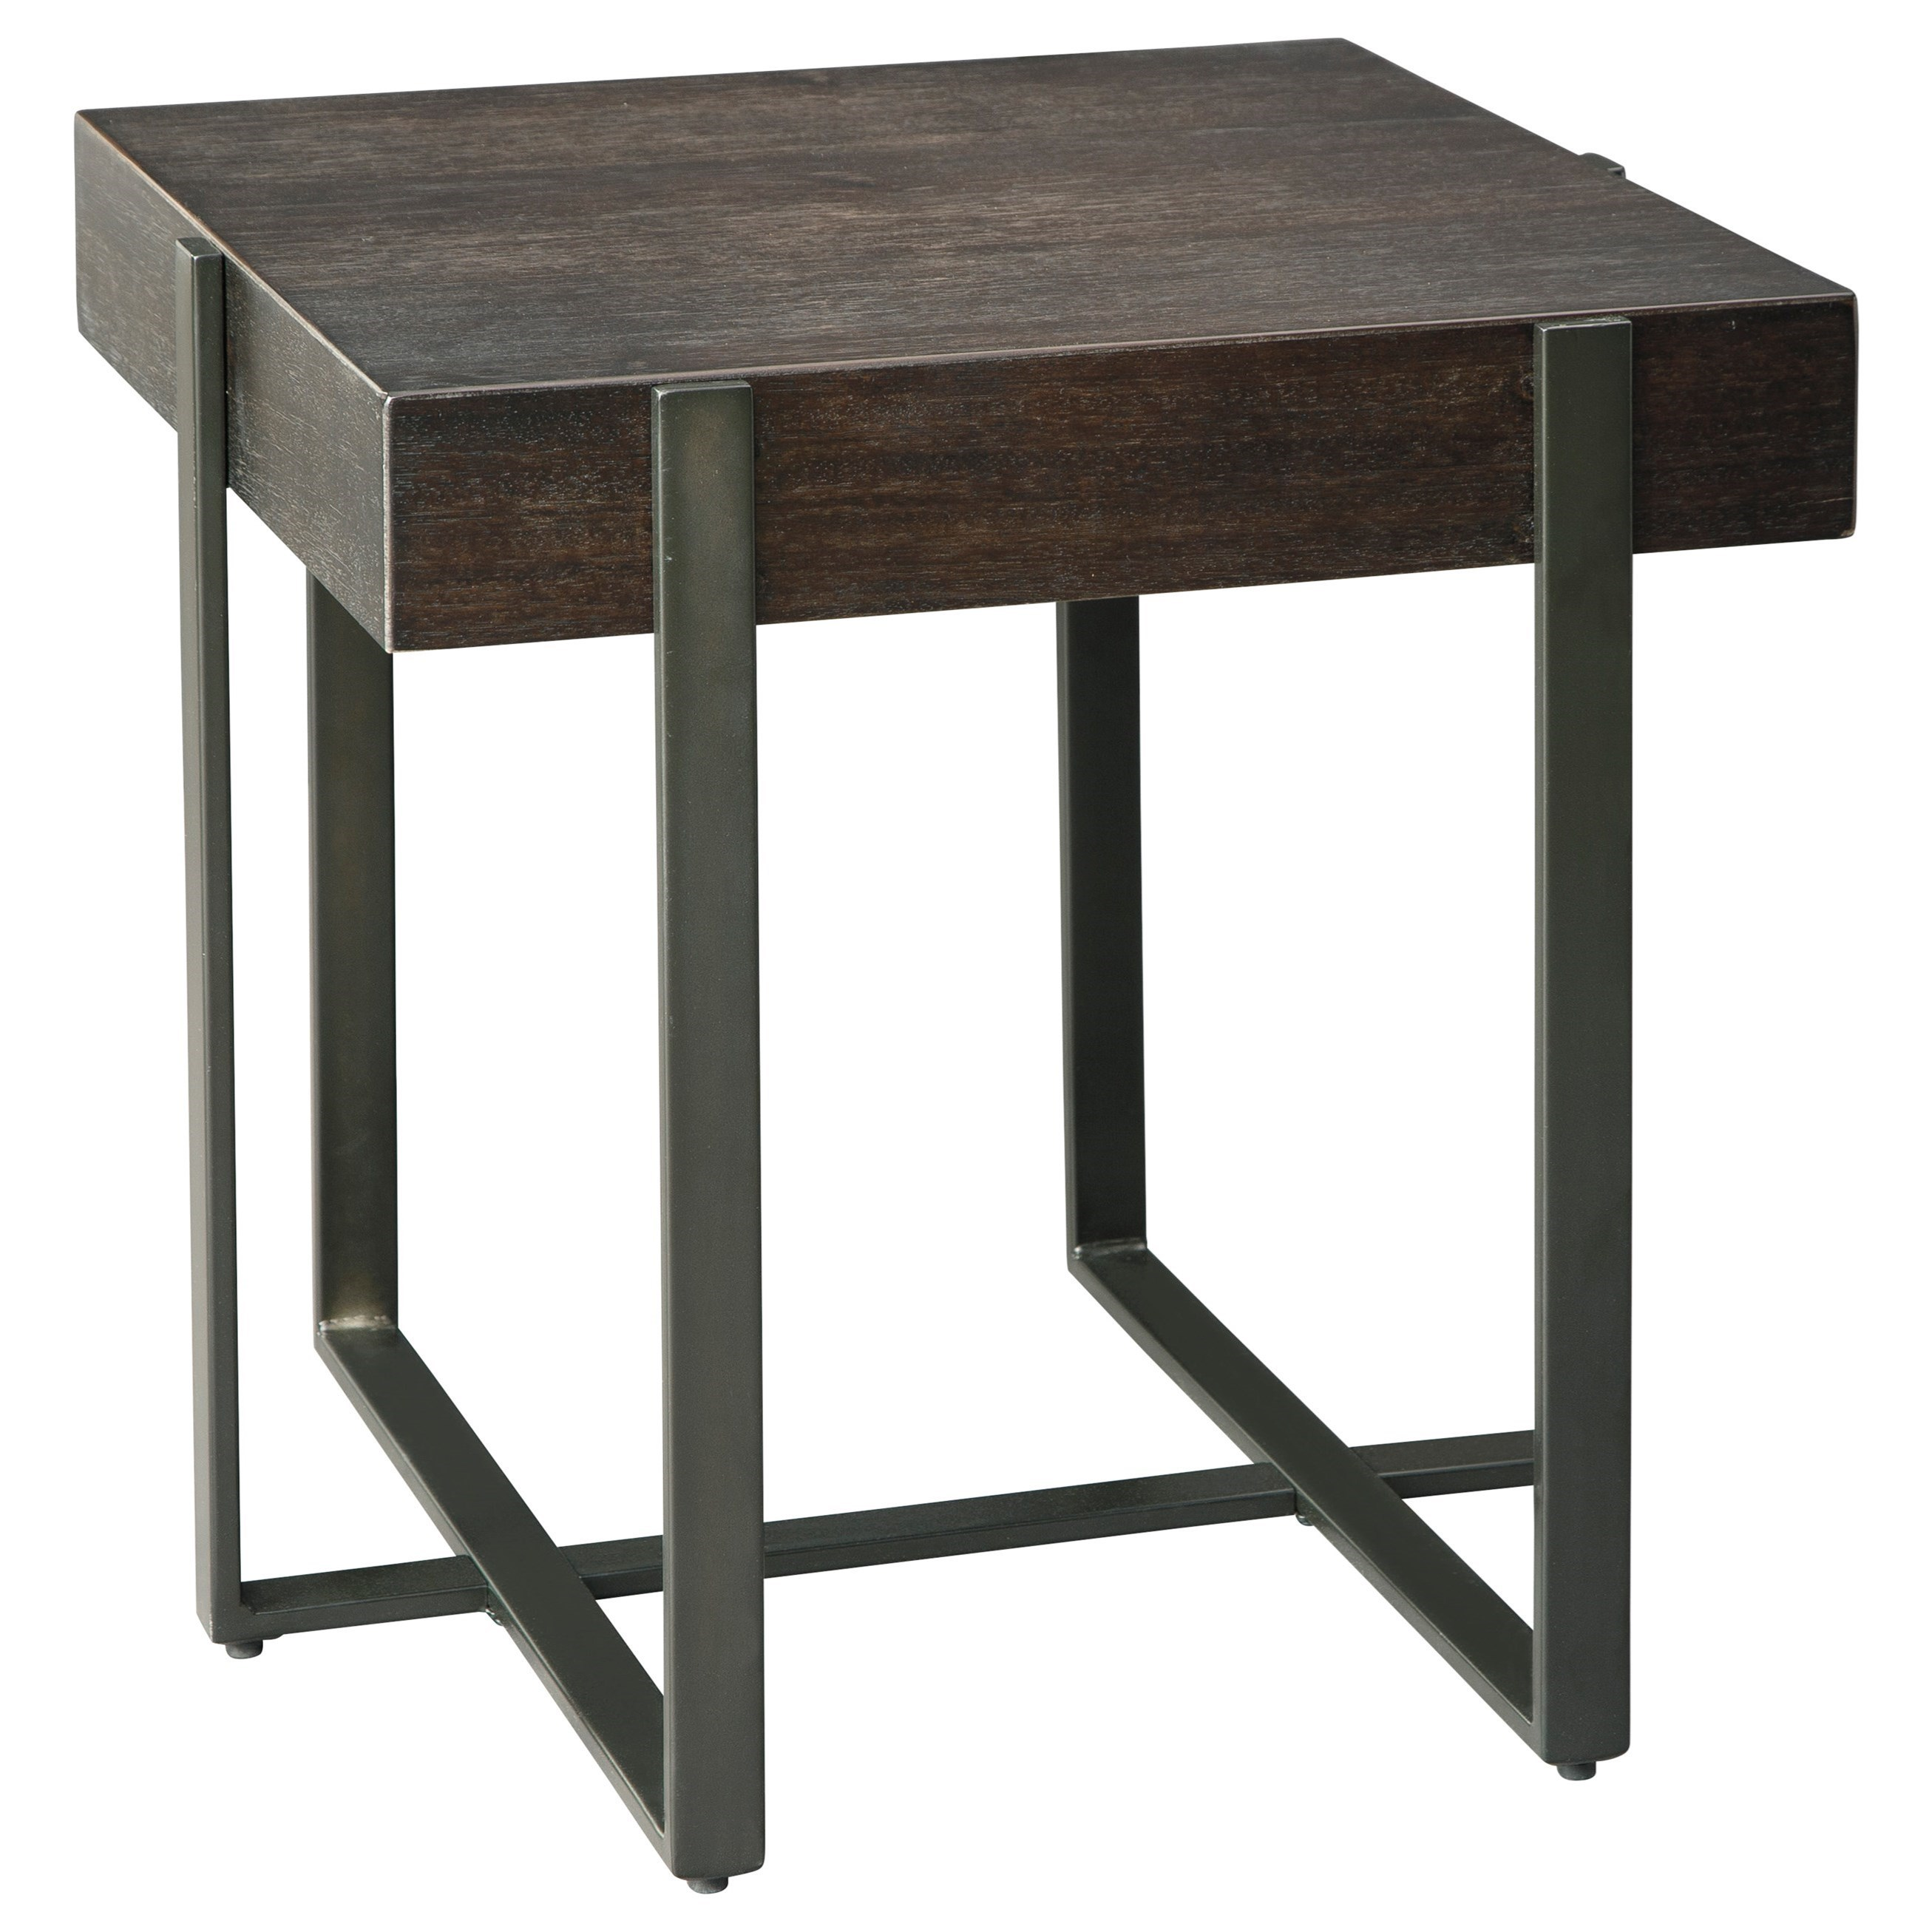 Drewing Square End Table by Signature Design by Ashley at Beck's Furniture